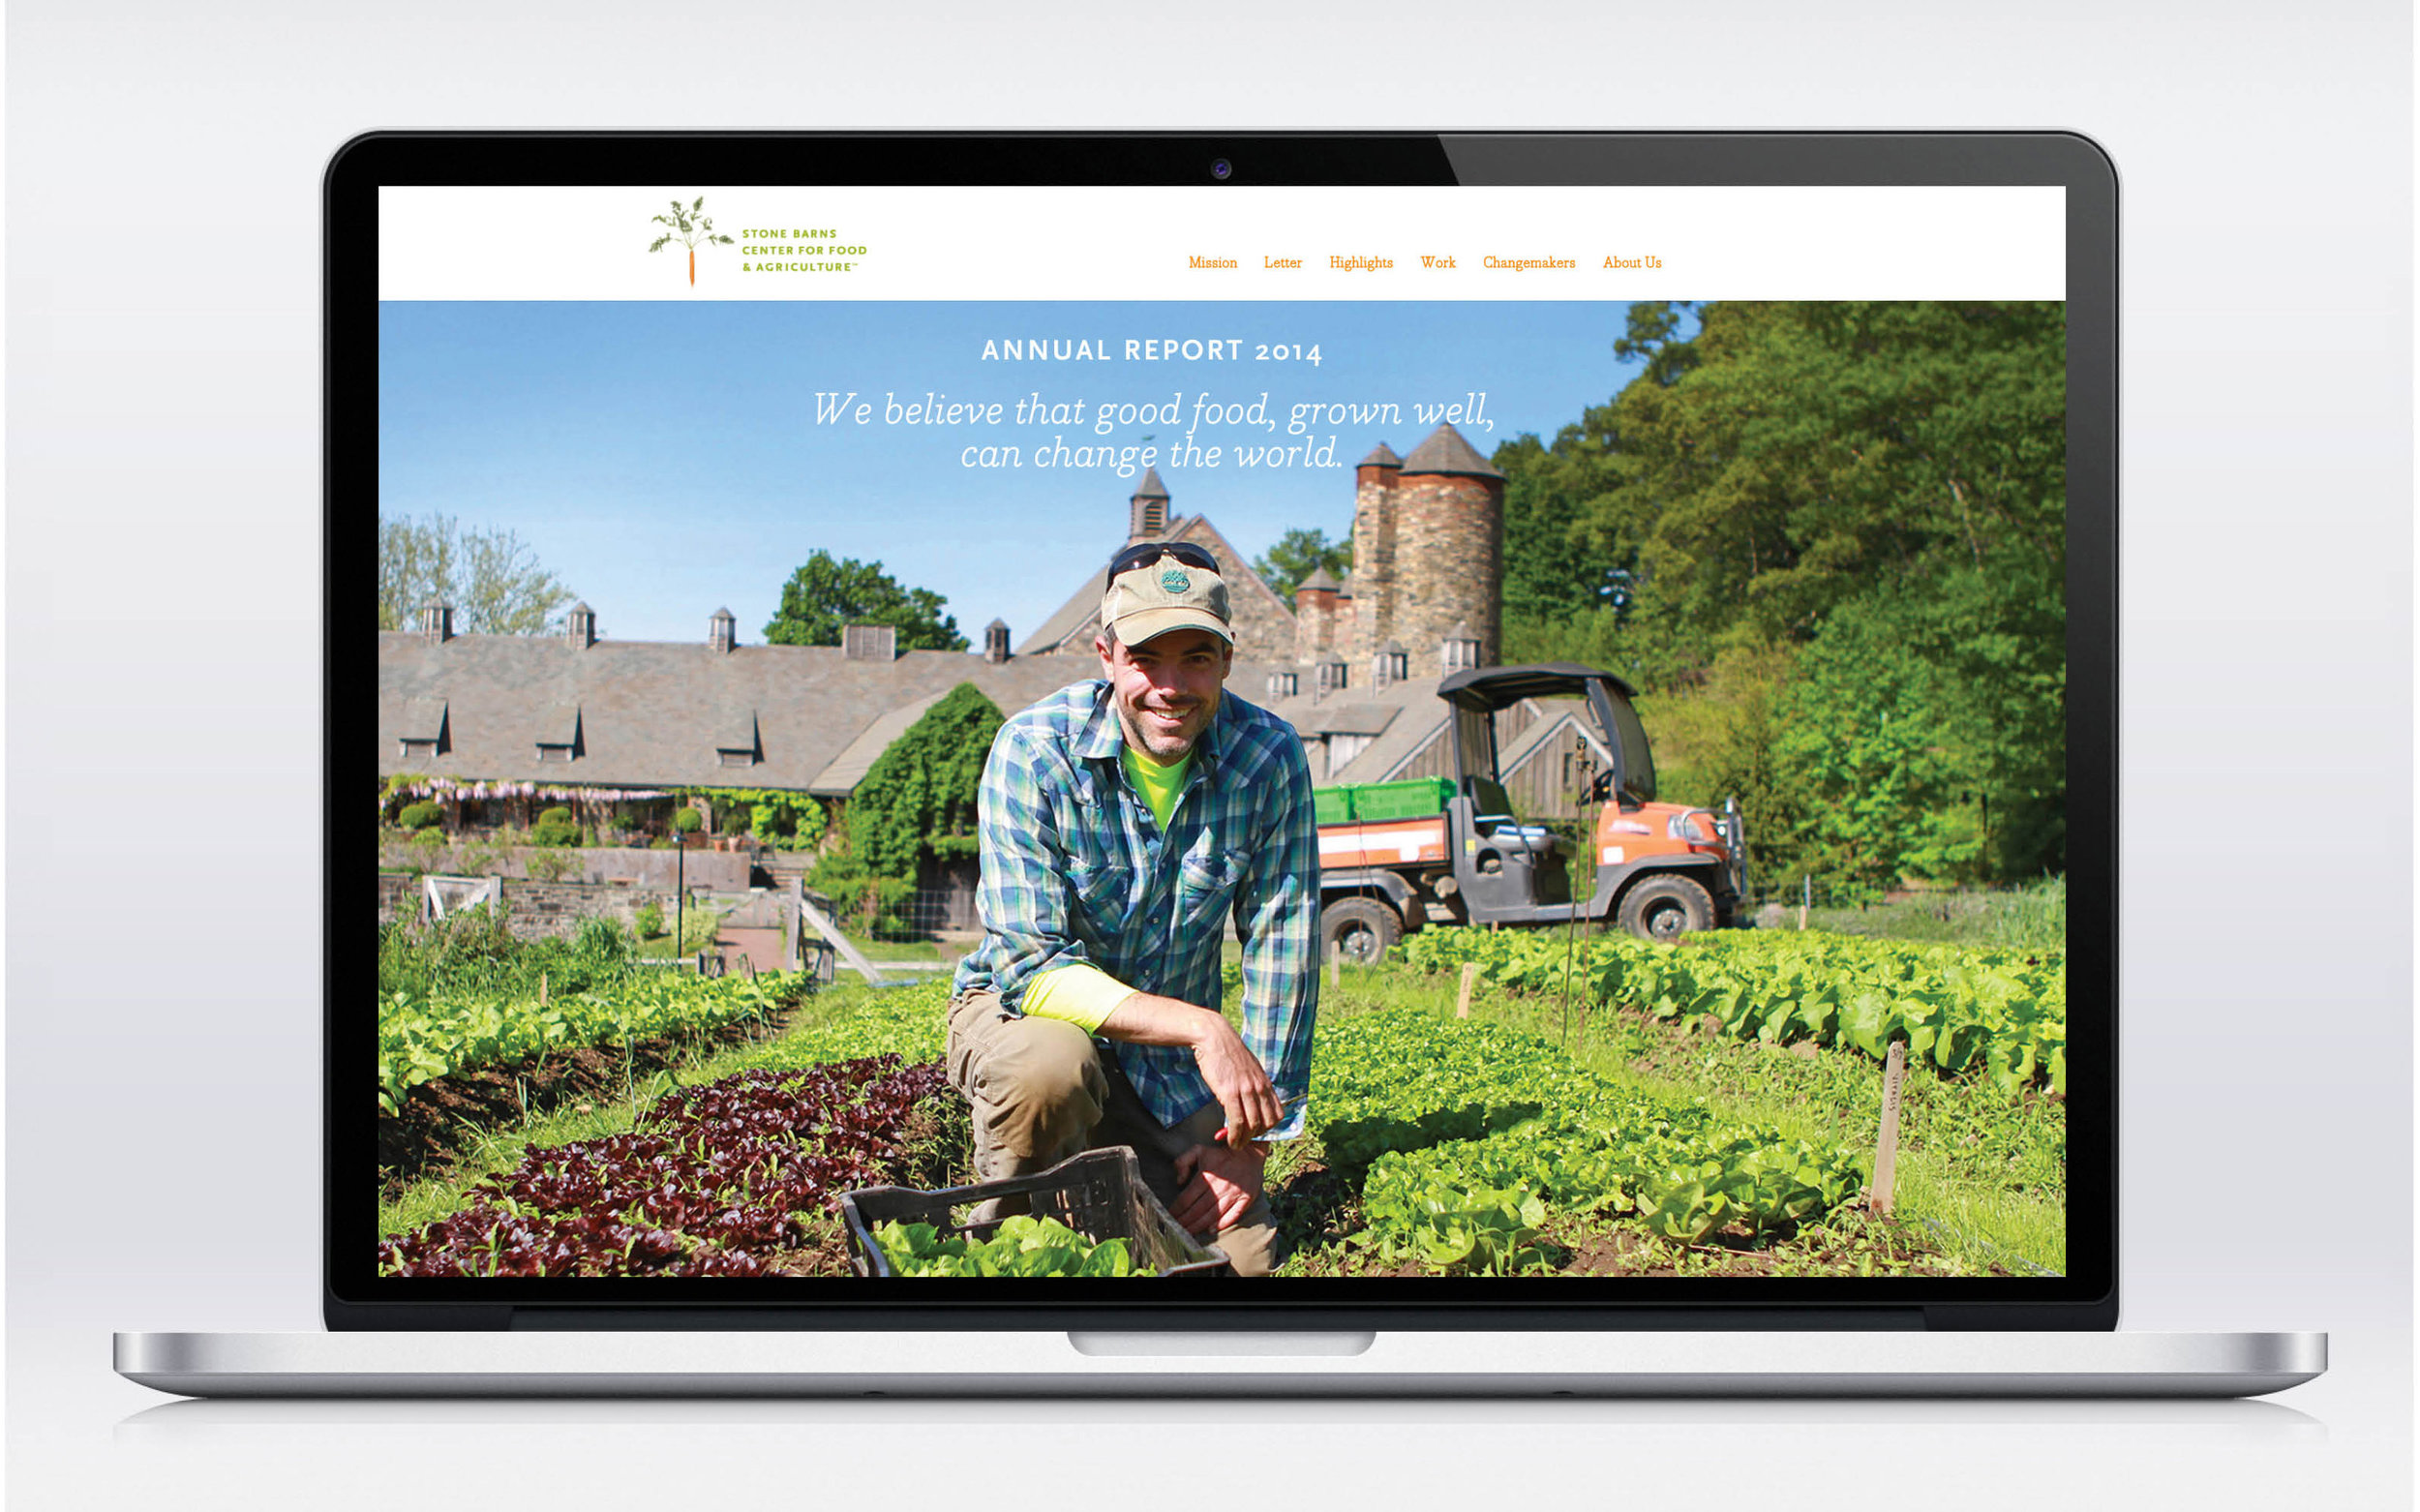 Stone Barns Annual Report